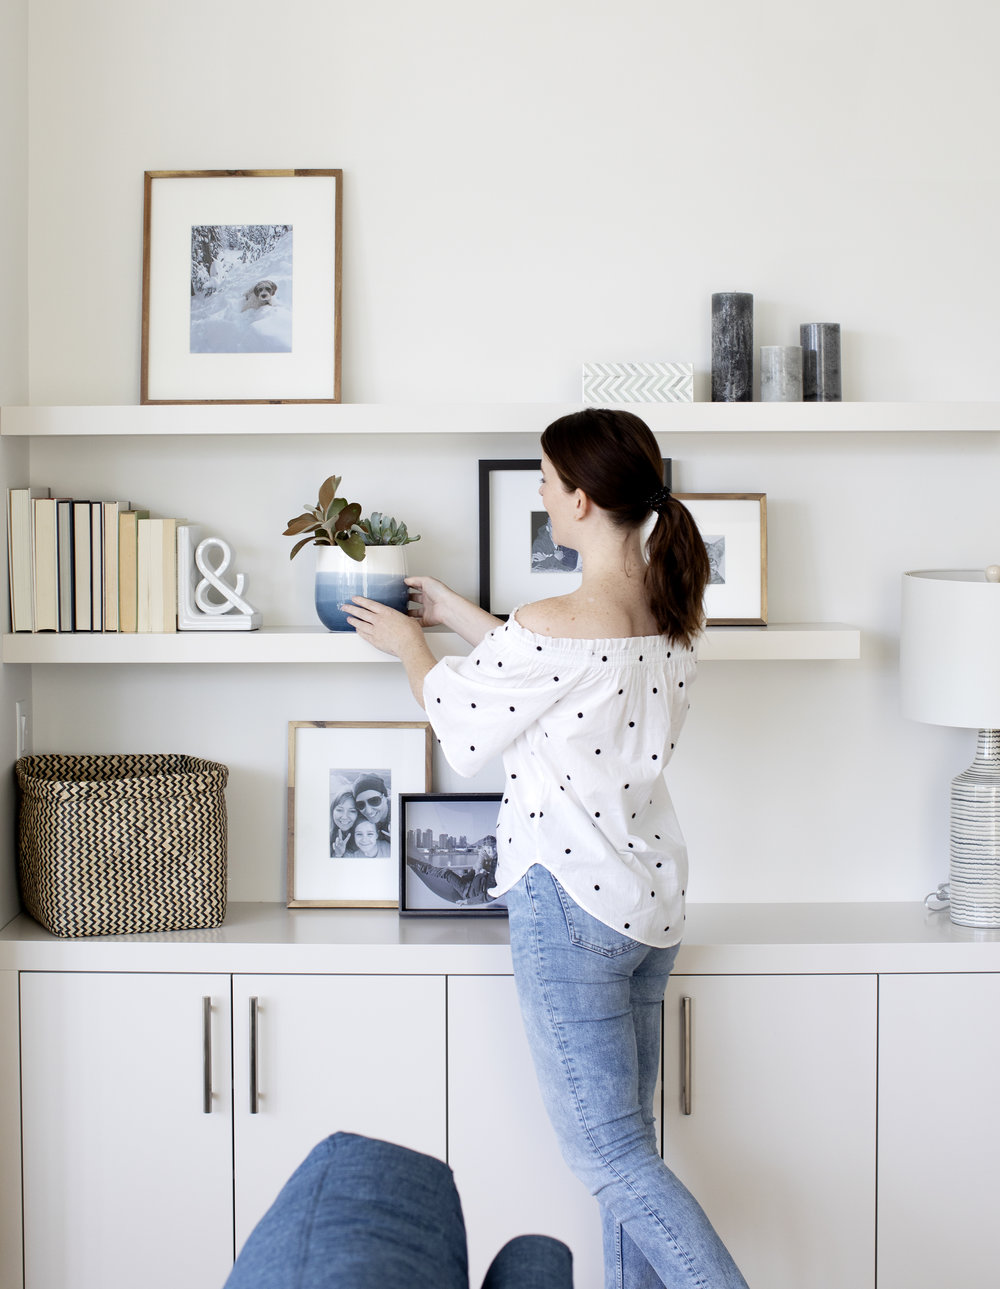 Framed family photos and loved items on the shelf. Decor thought through down to the last detail makes the space feel like home.